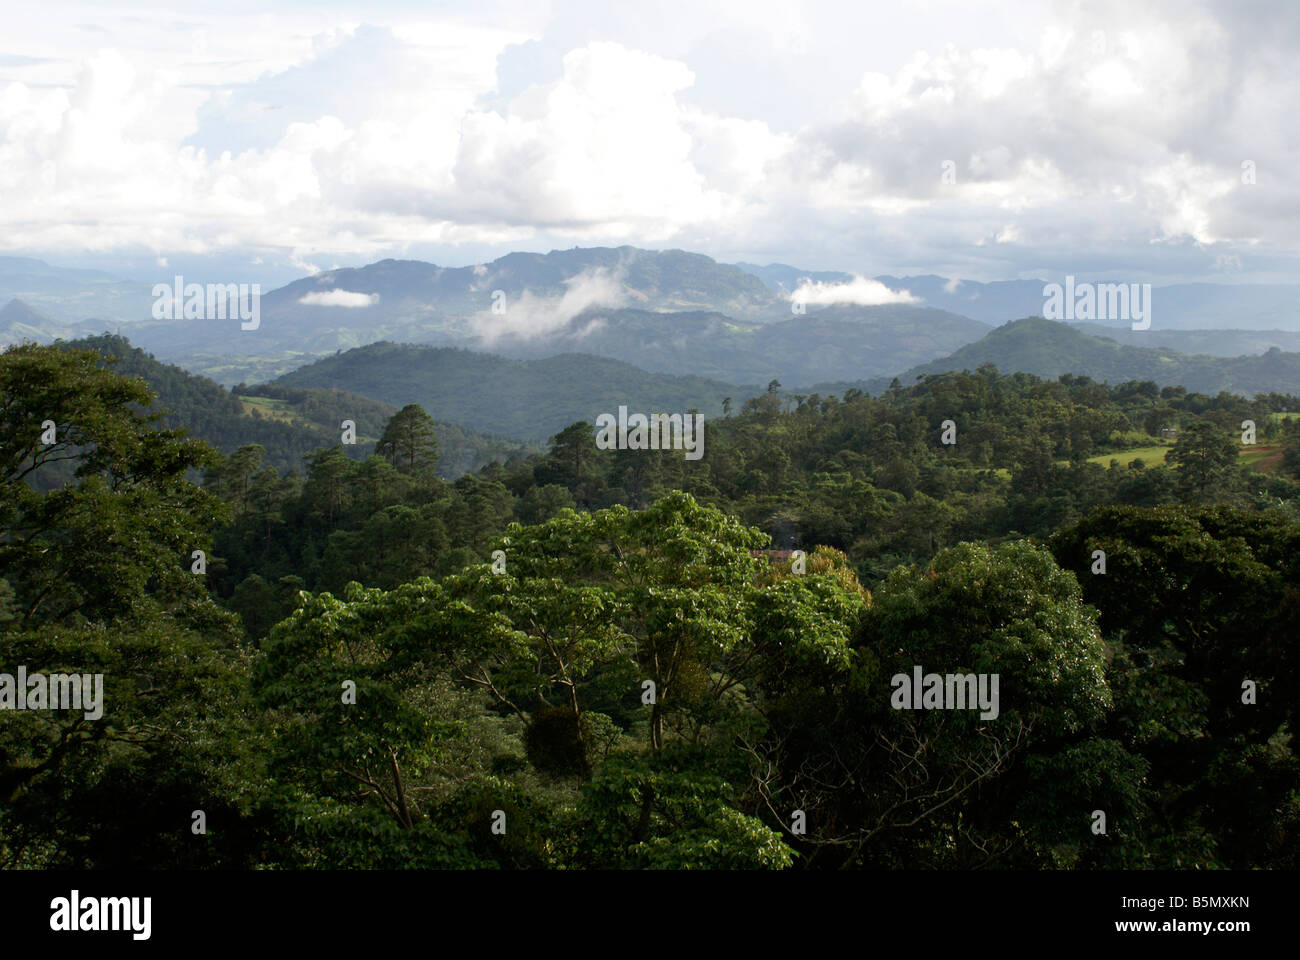 Forested mountains and cloud forest  near Matagalpa, Nicaragua Stock Photo